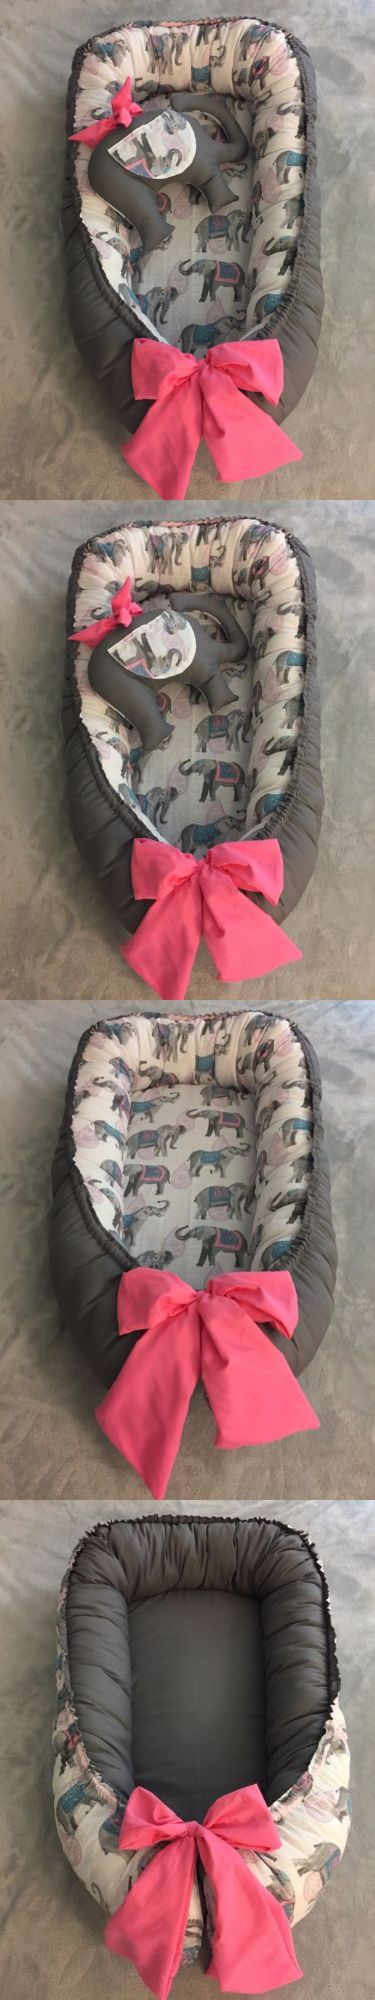 Other Nursery Bedding 20421: Baby Nest Double Side With Toy Elephant Baby Portable Bed -> BUY IT NOW ONLY: $58 on eBay!